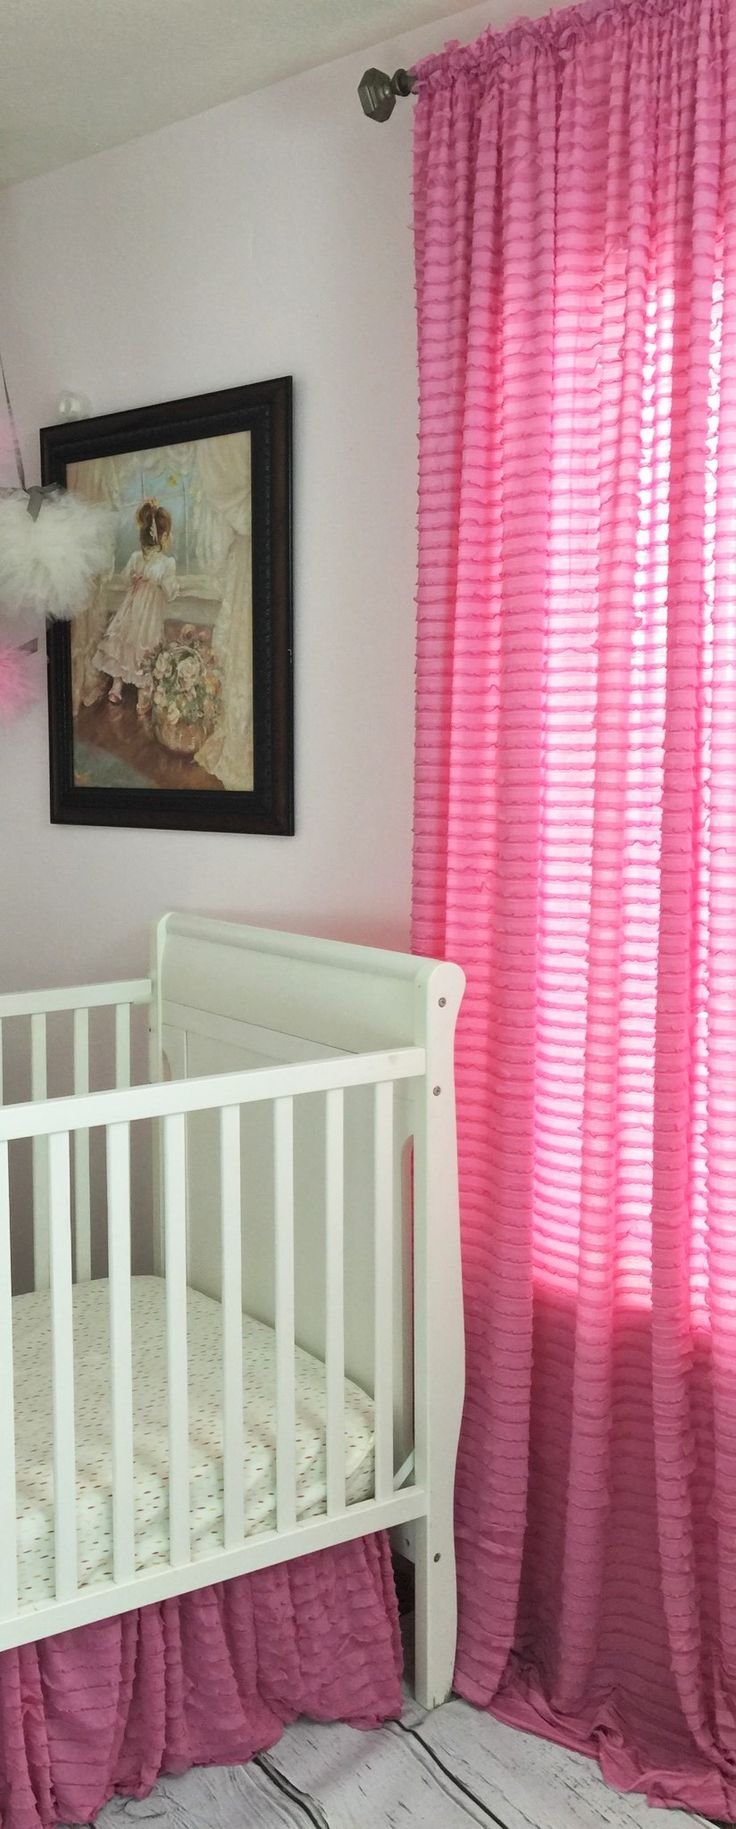 "96"" Ruffle Curtain Panel Window Treatment - Many Colors Available - Great for Bedroom, Nursery, Living Rooms!"